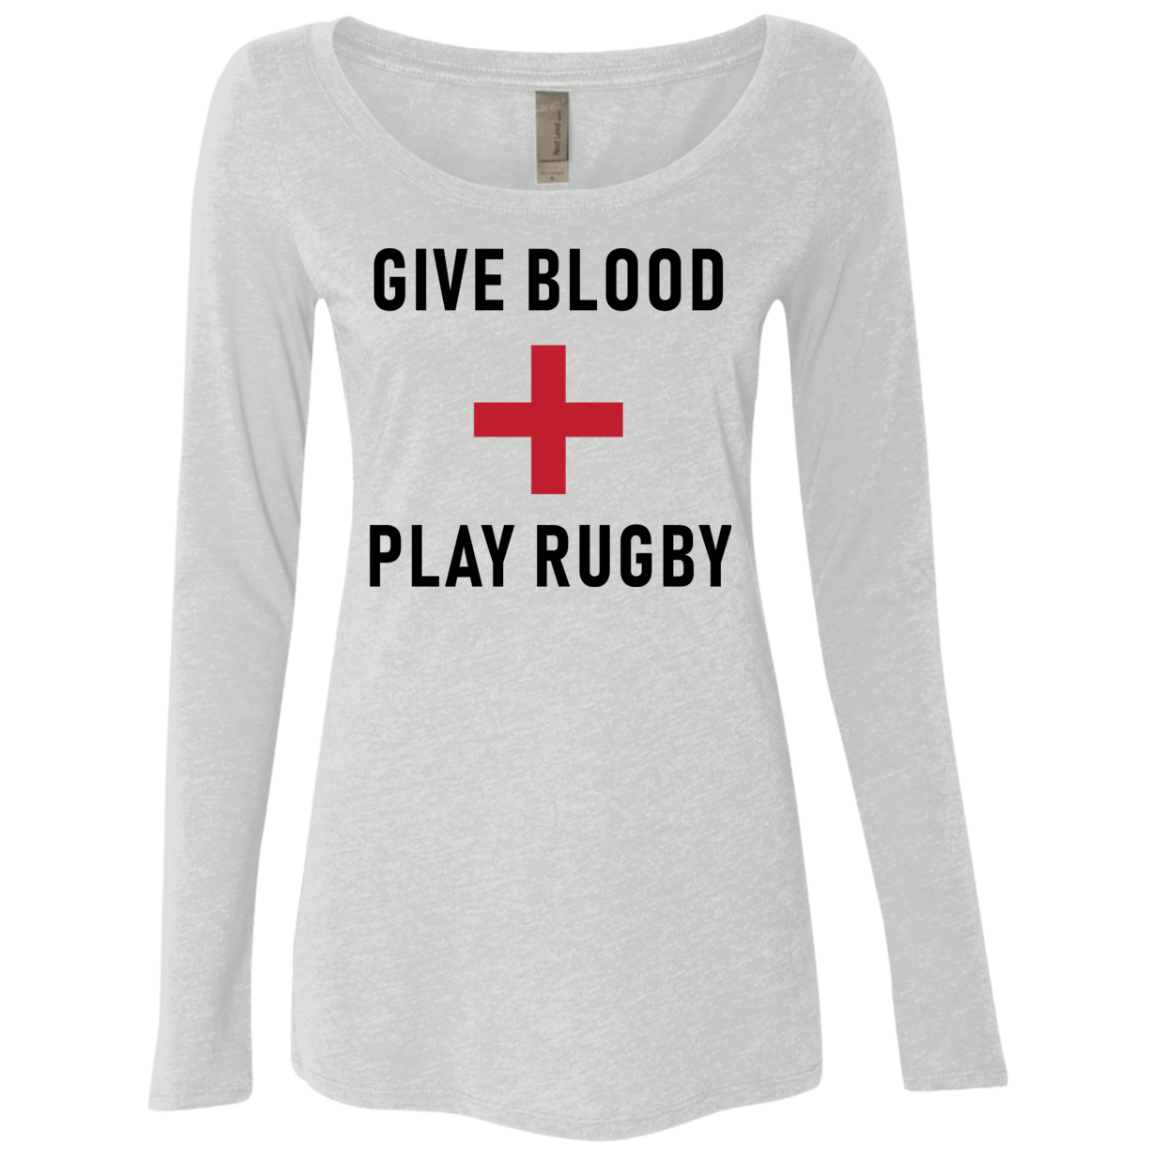 Give Blood Play Rugby Women's Long Sleeve Tee